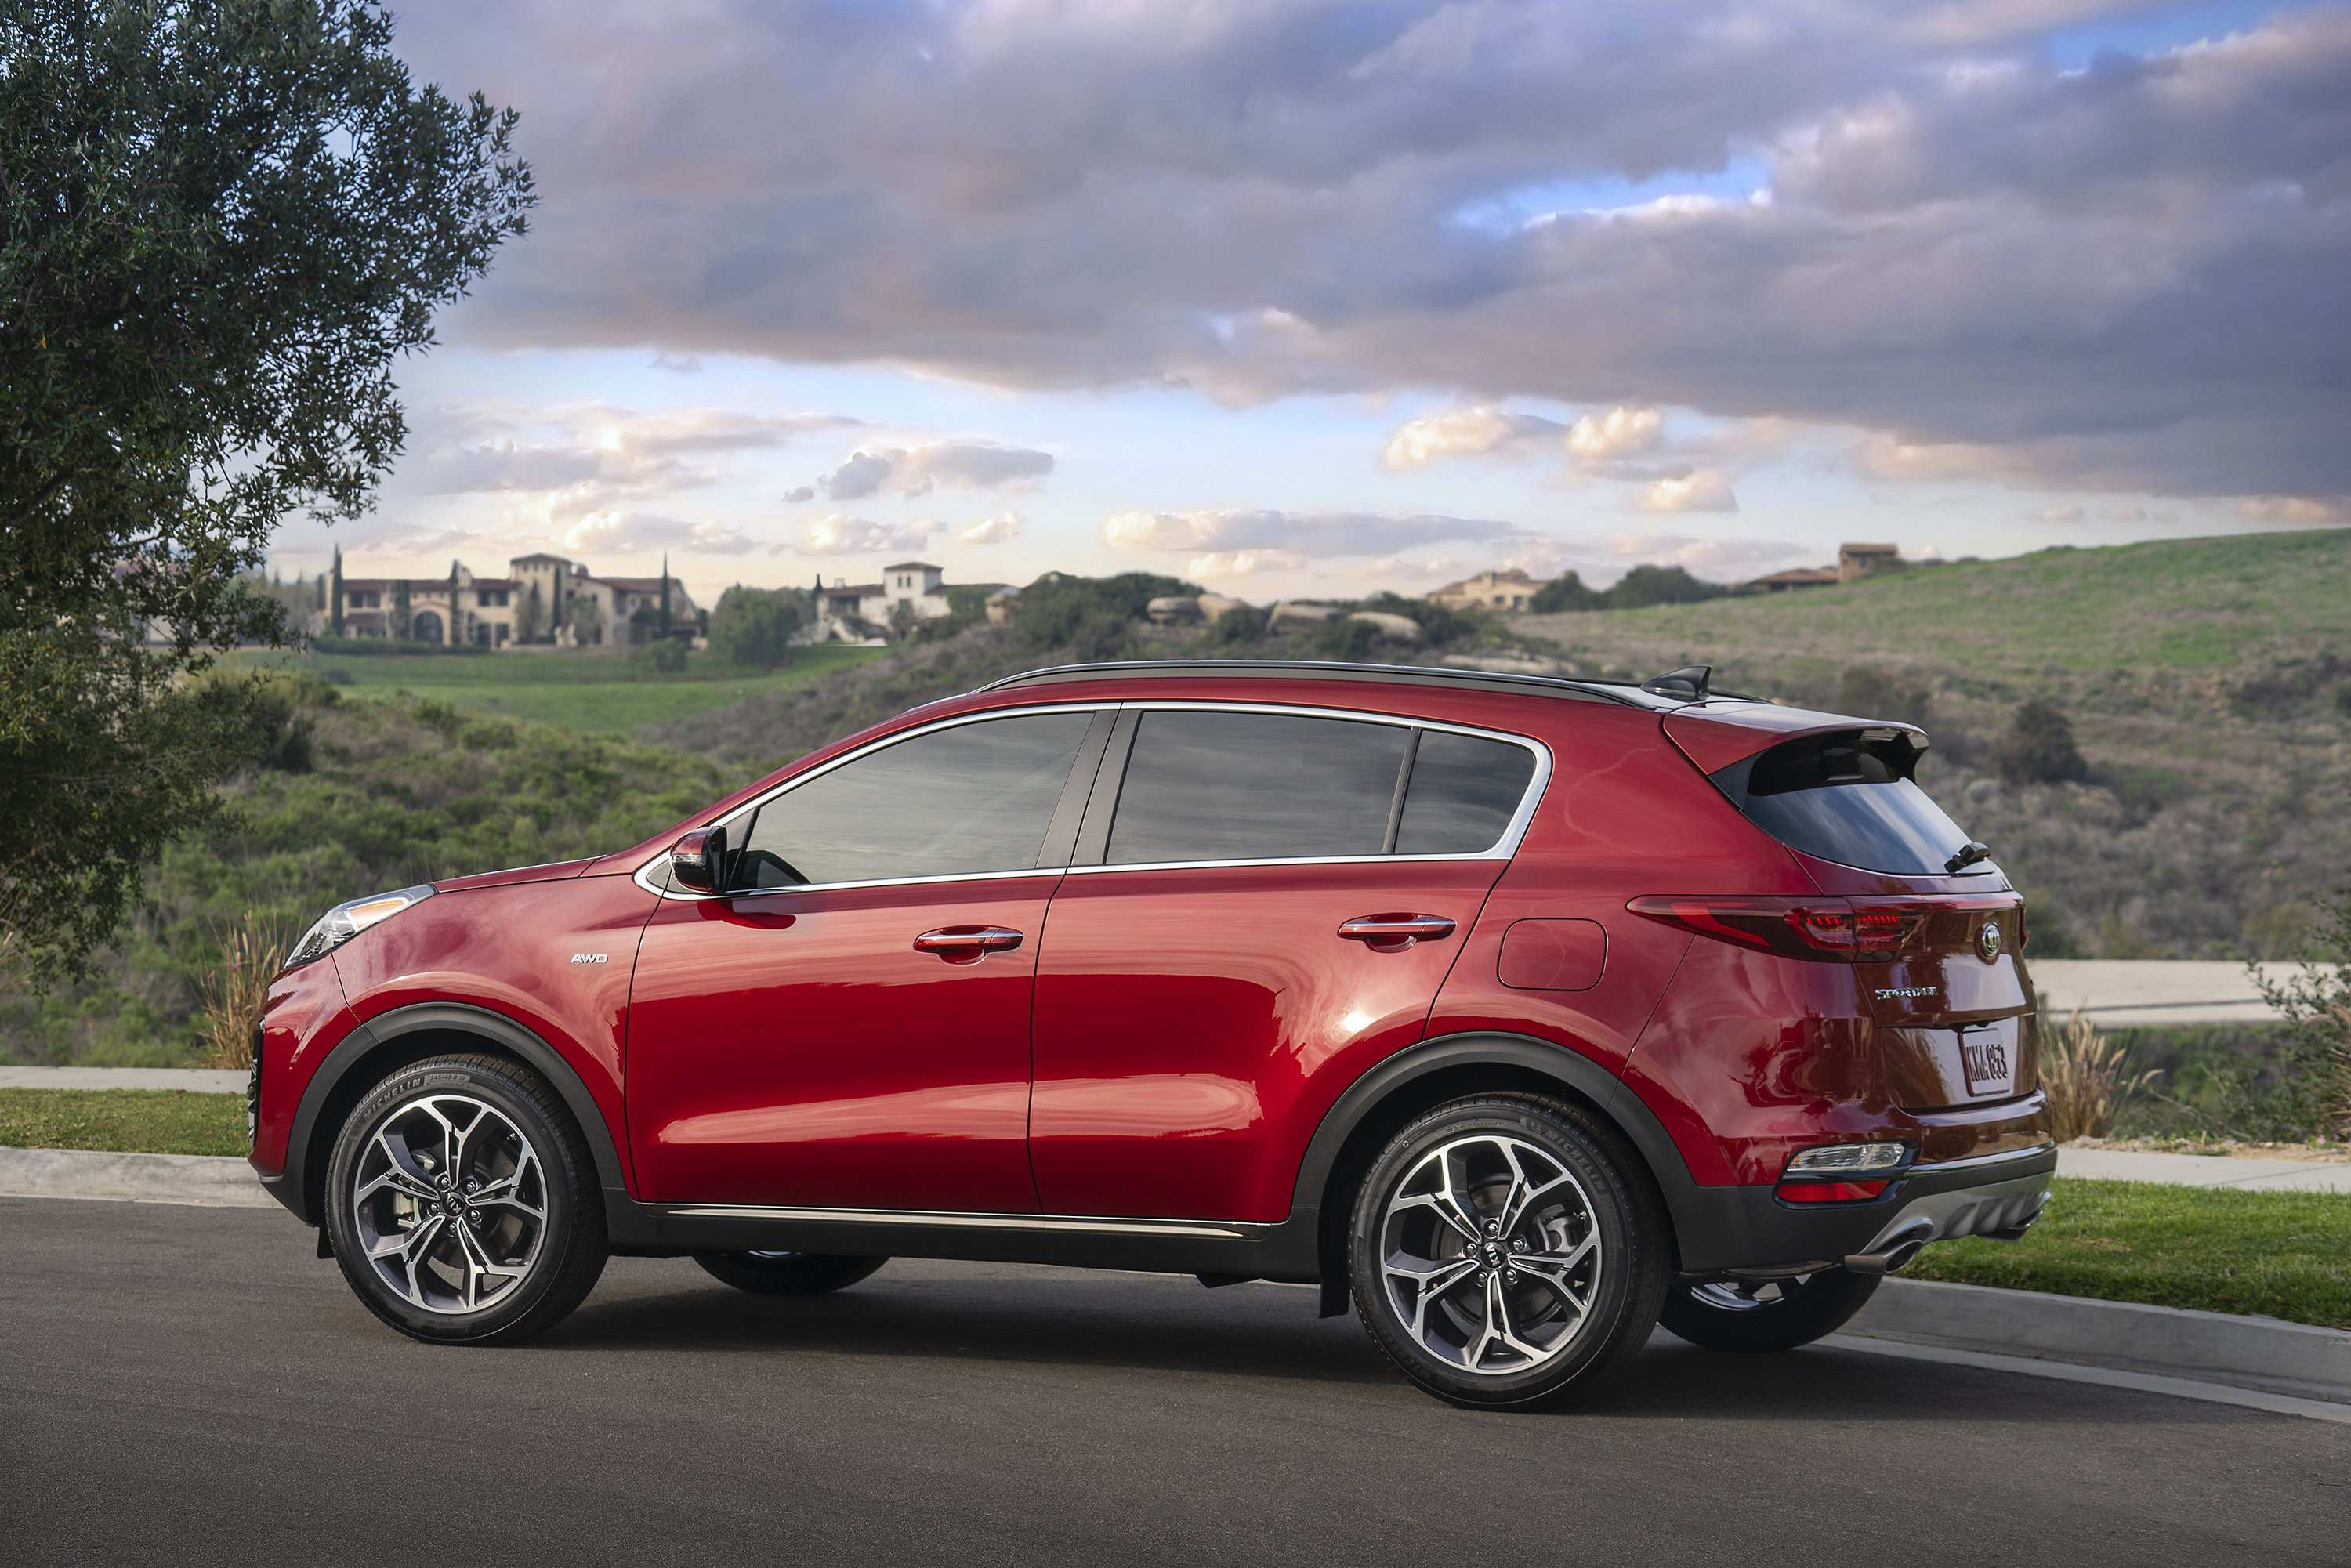 74 All New When Does The 2020 Kia Sportage Come Out Release